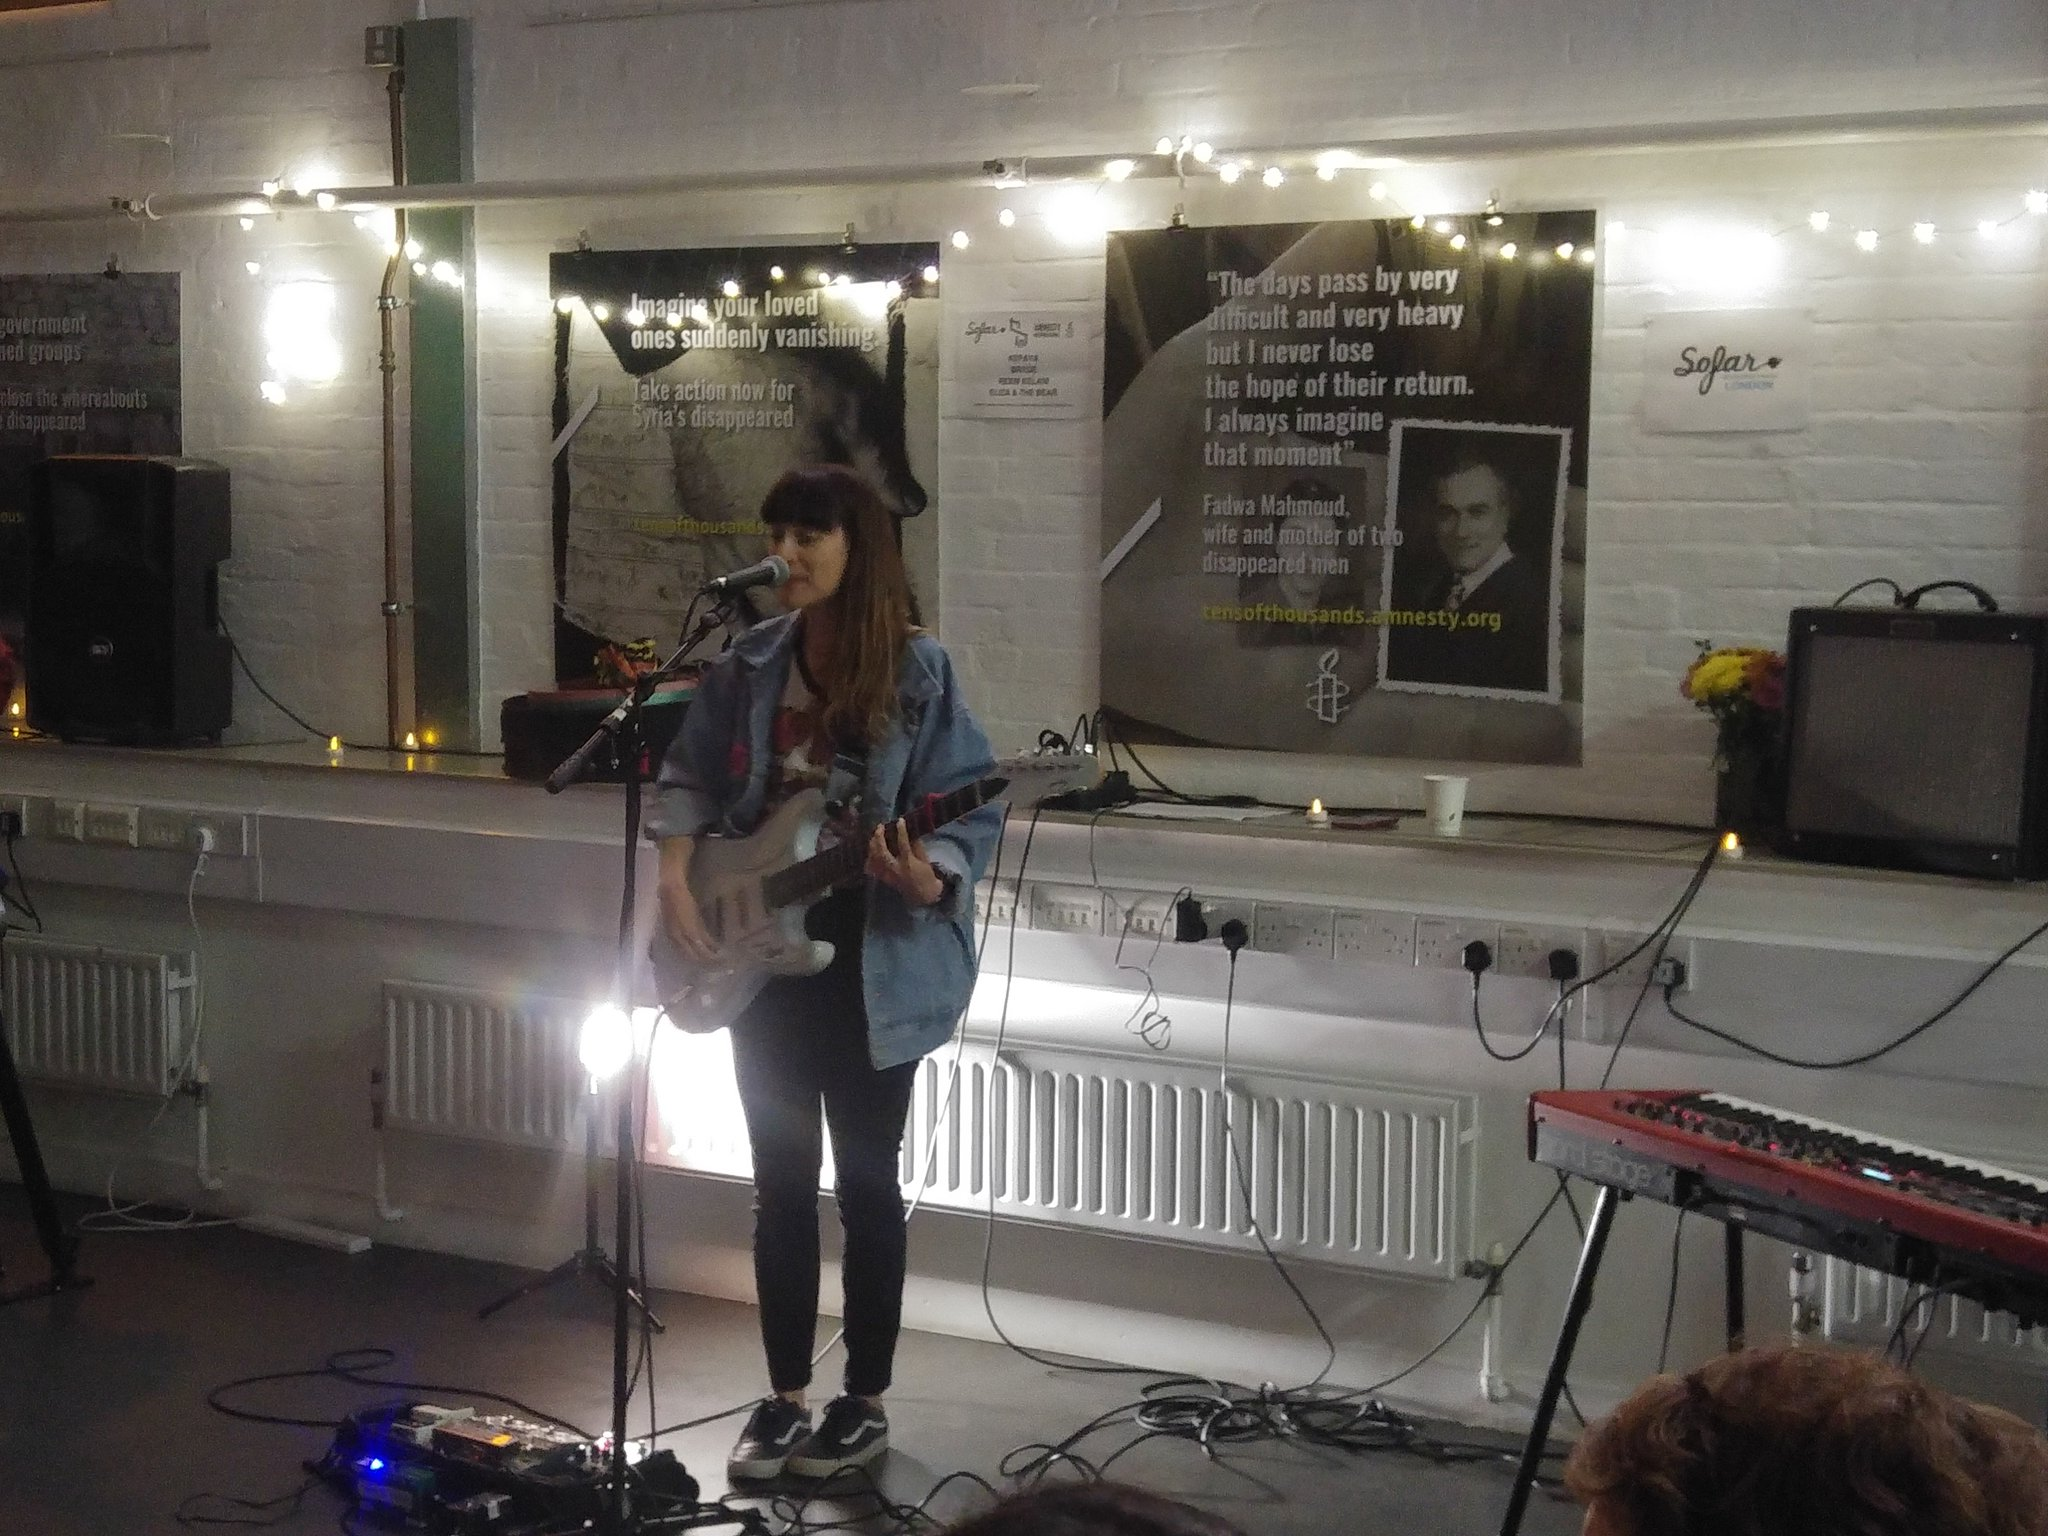 .@brydeofficial has us transfixed during her #giveahome set for #refugeecrisis  (and Hollyoaks IS cool) @sofarsounds https://t.co/YqdahlS3Z5